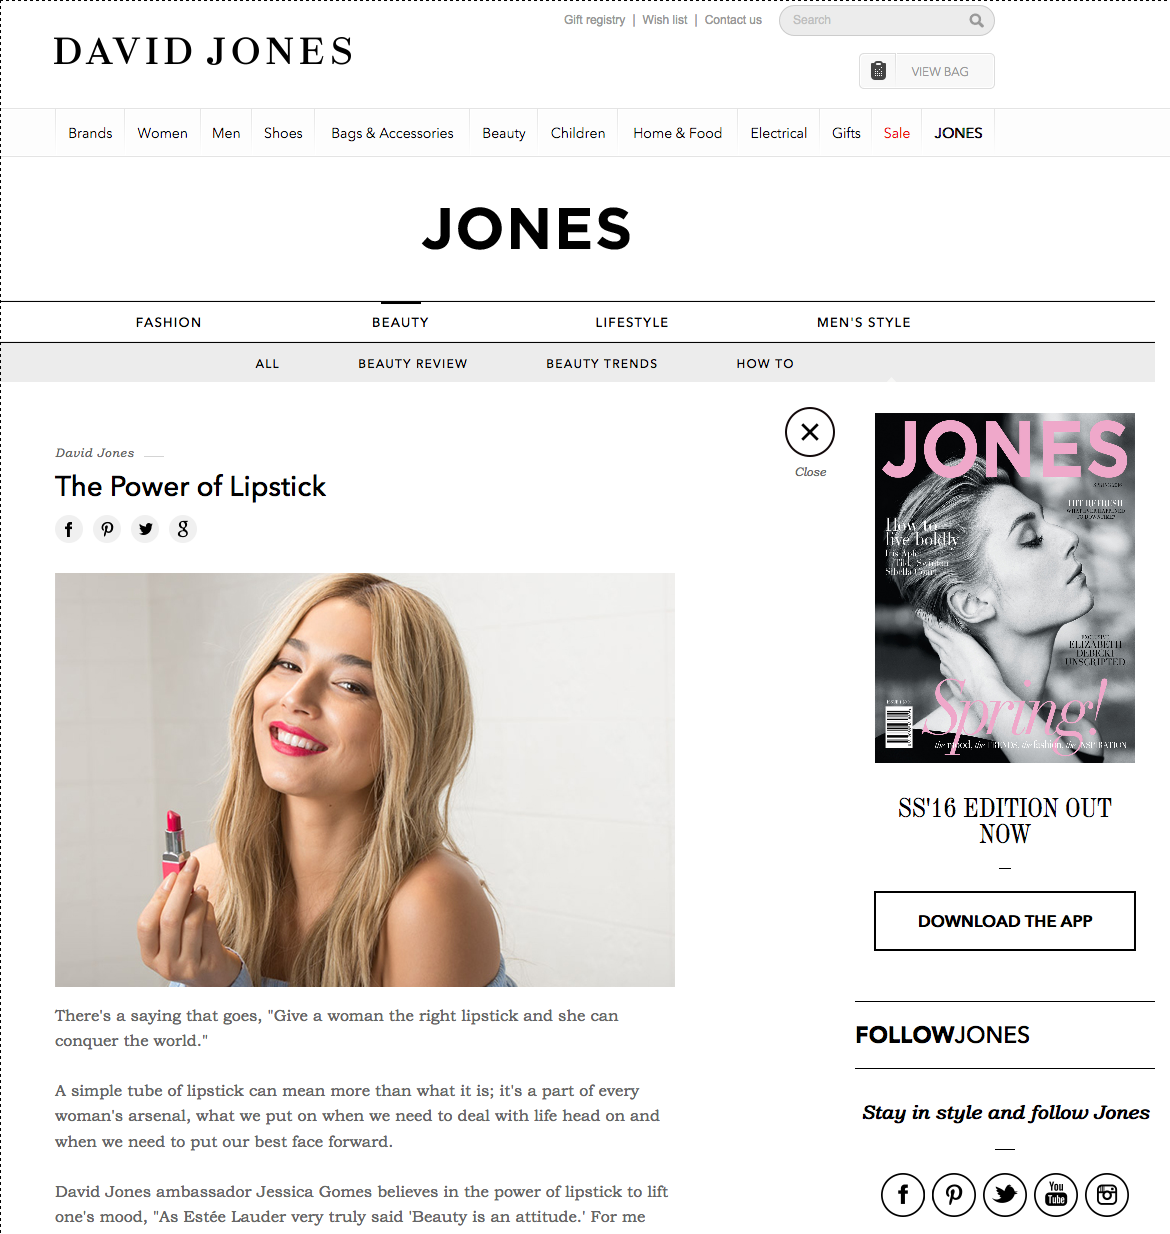 The Power of Lipstick   JONES   David Jones Blog.png